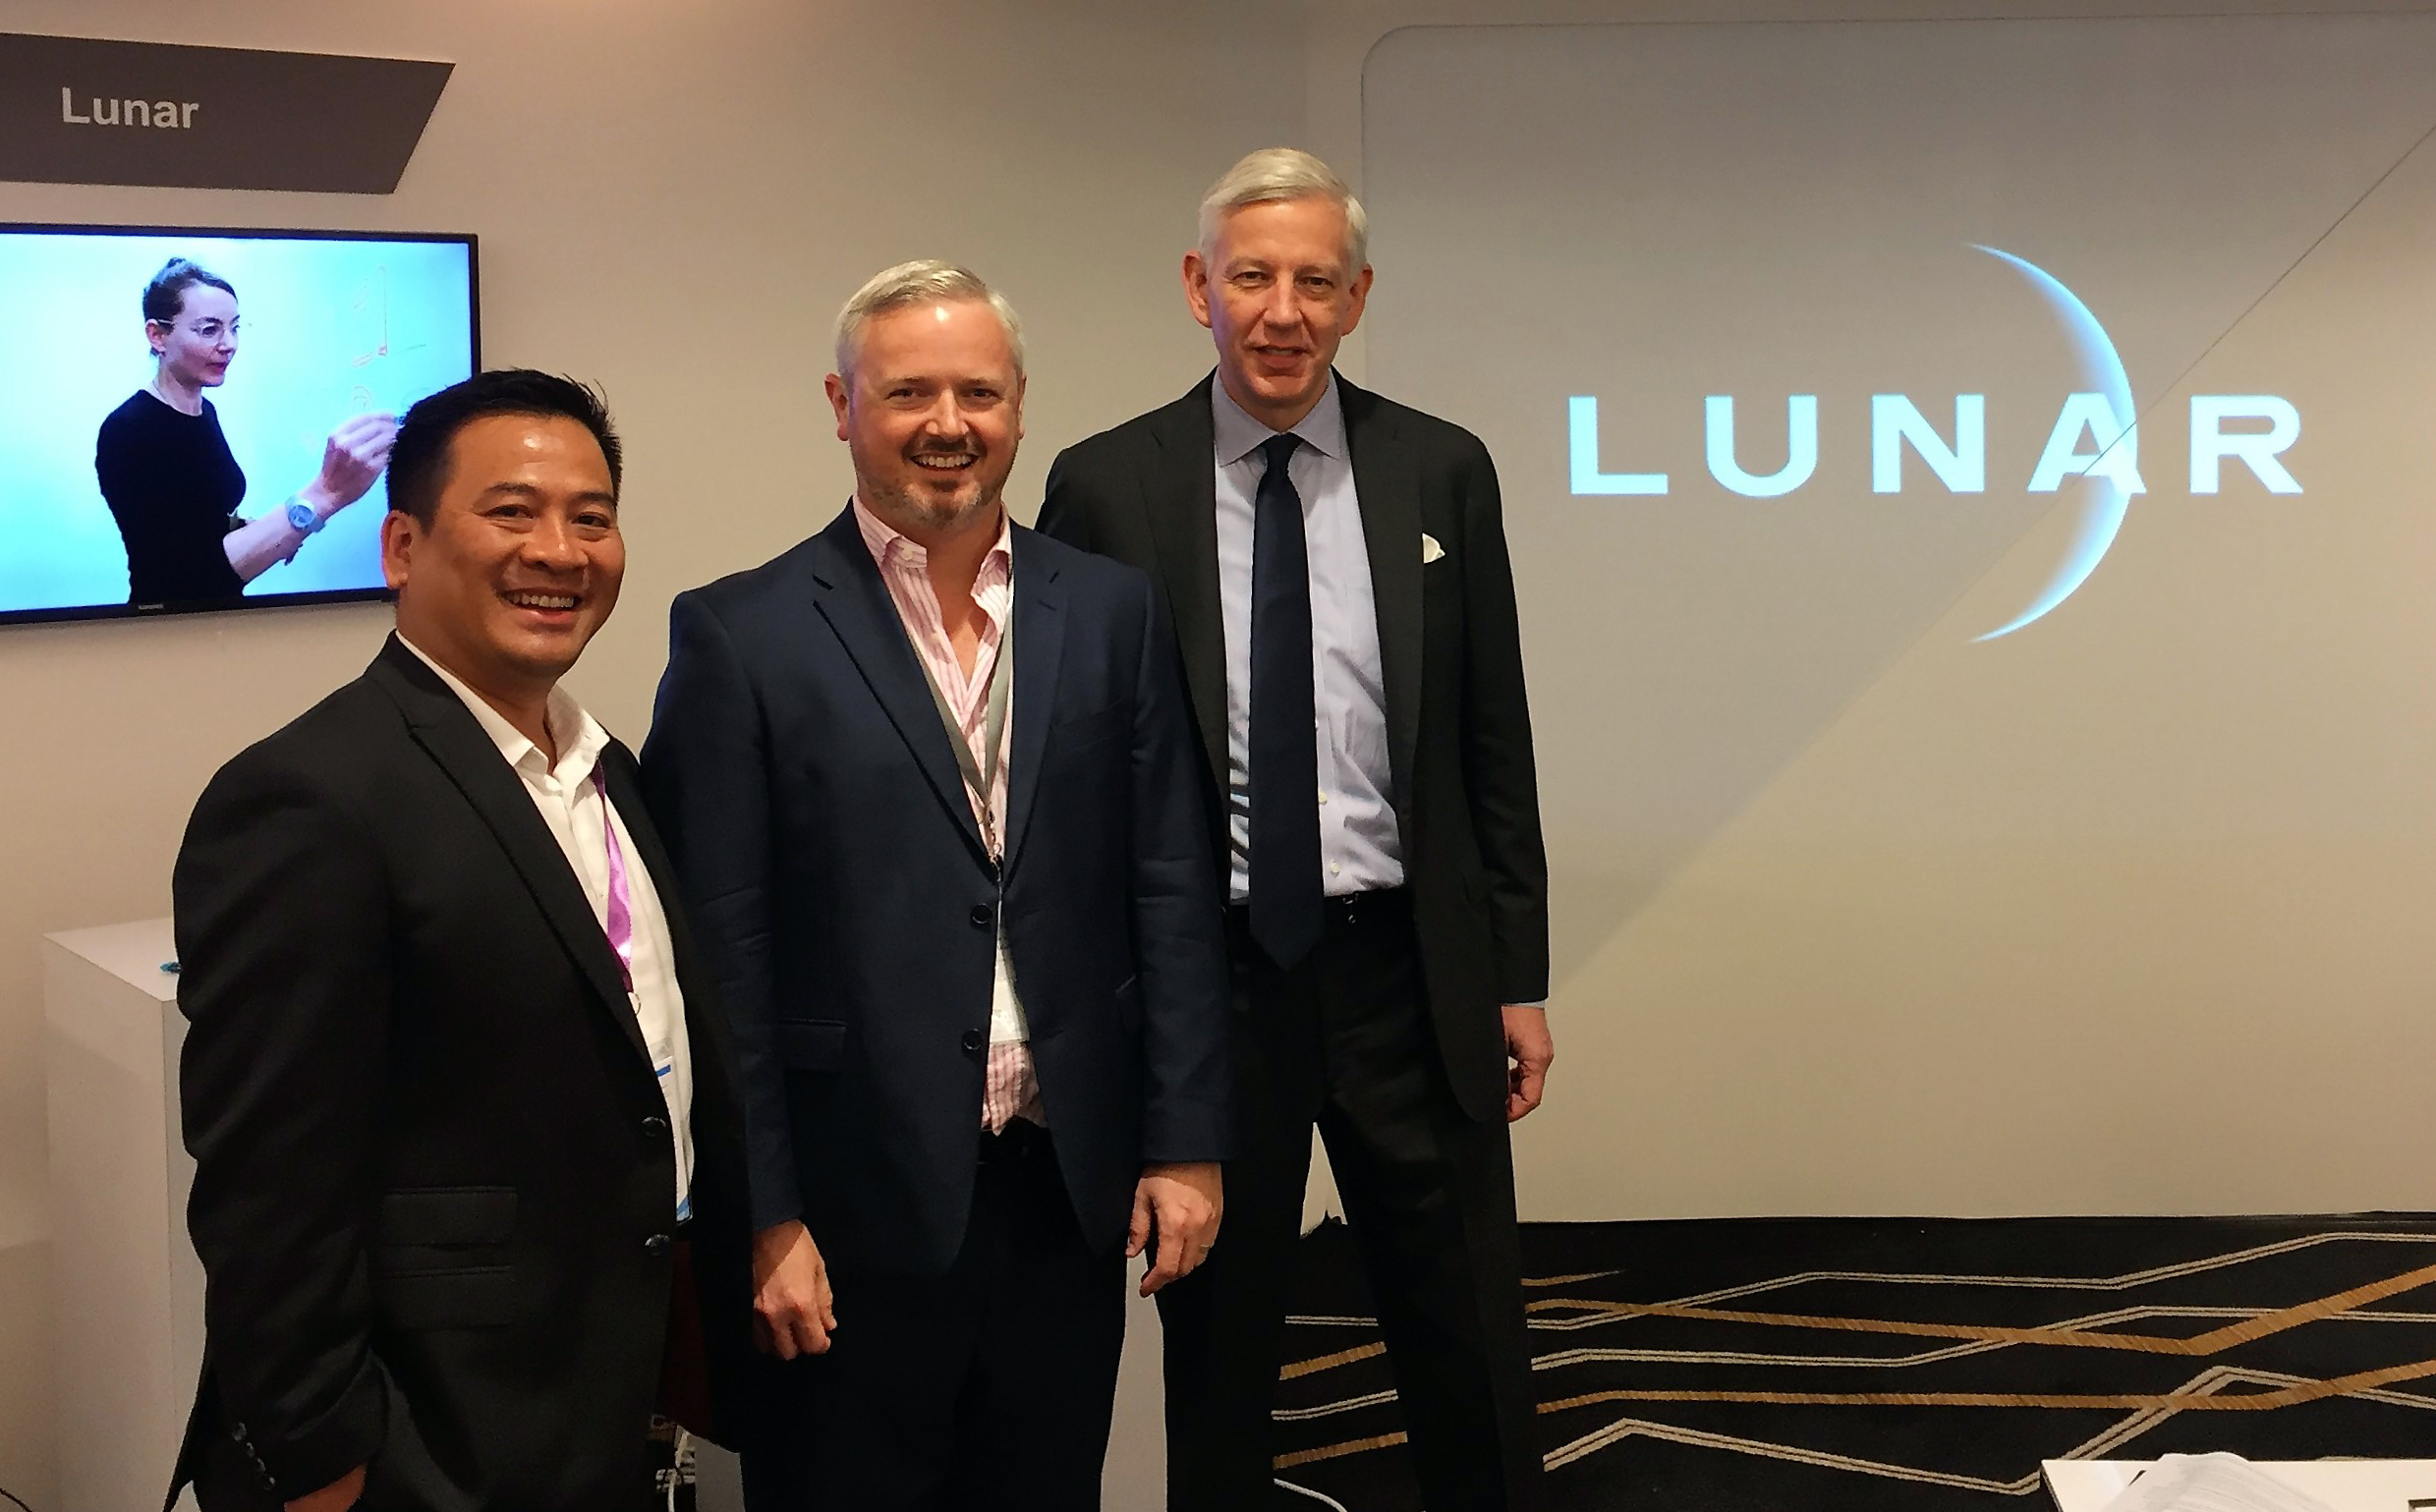 Chau Nguyen, Matt Durack, and Dominic Barton